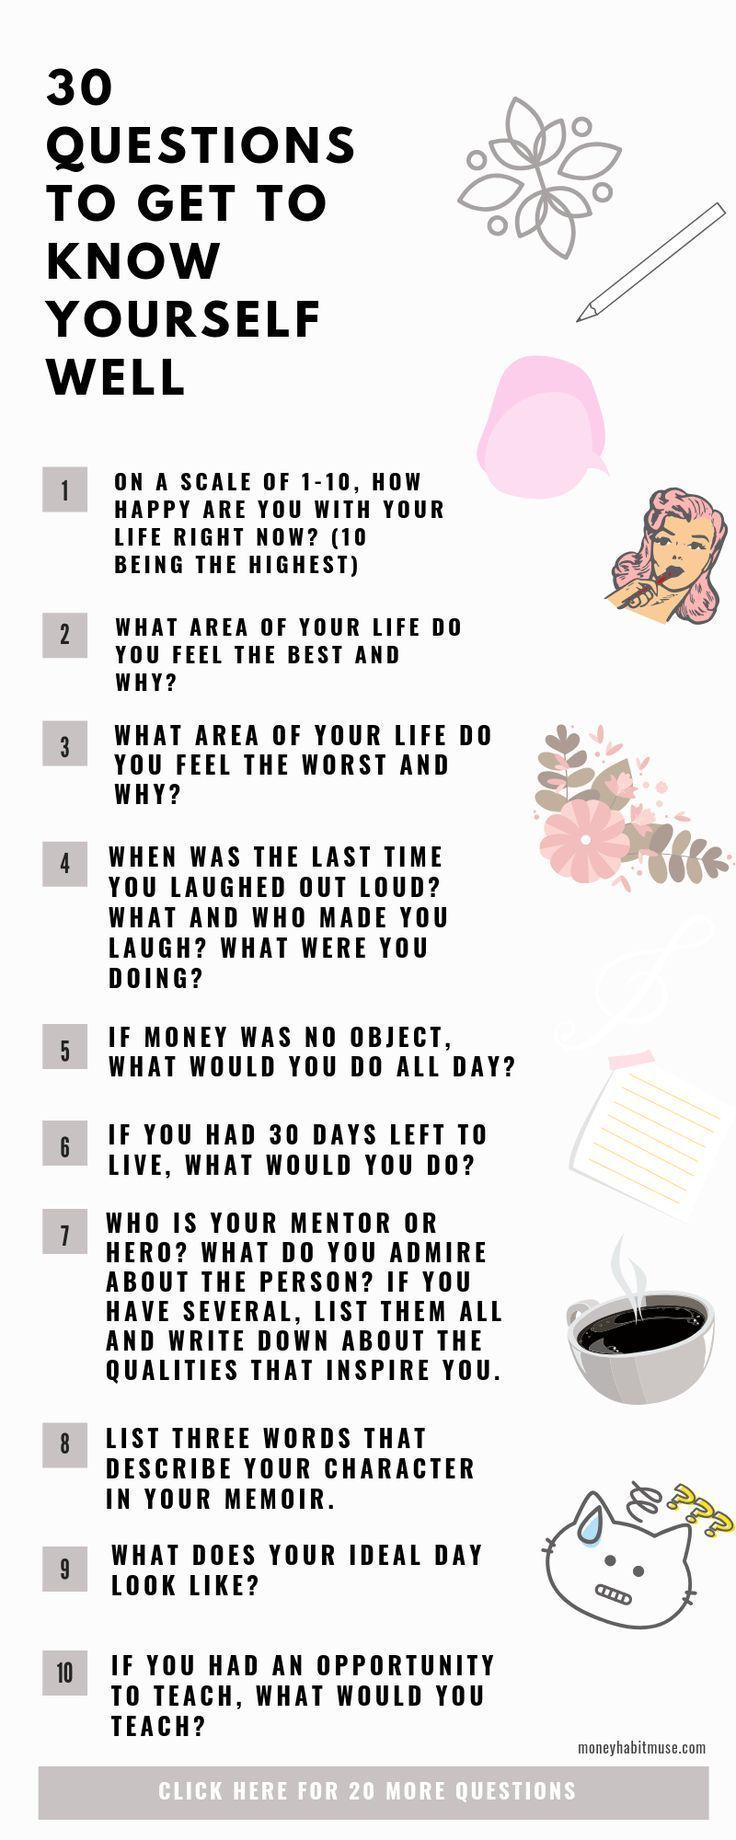 30 Questions to Get to Know Yourself Well